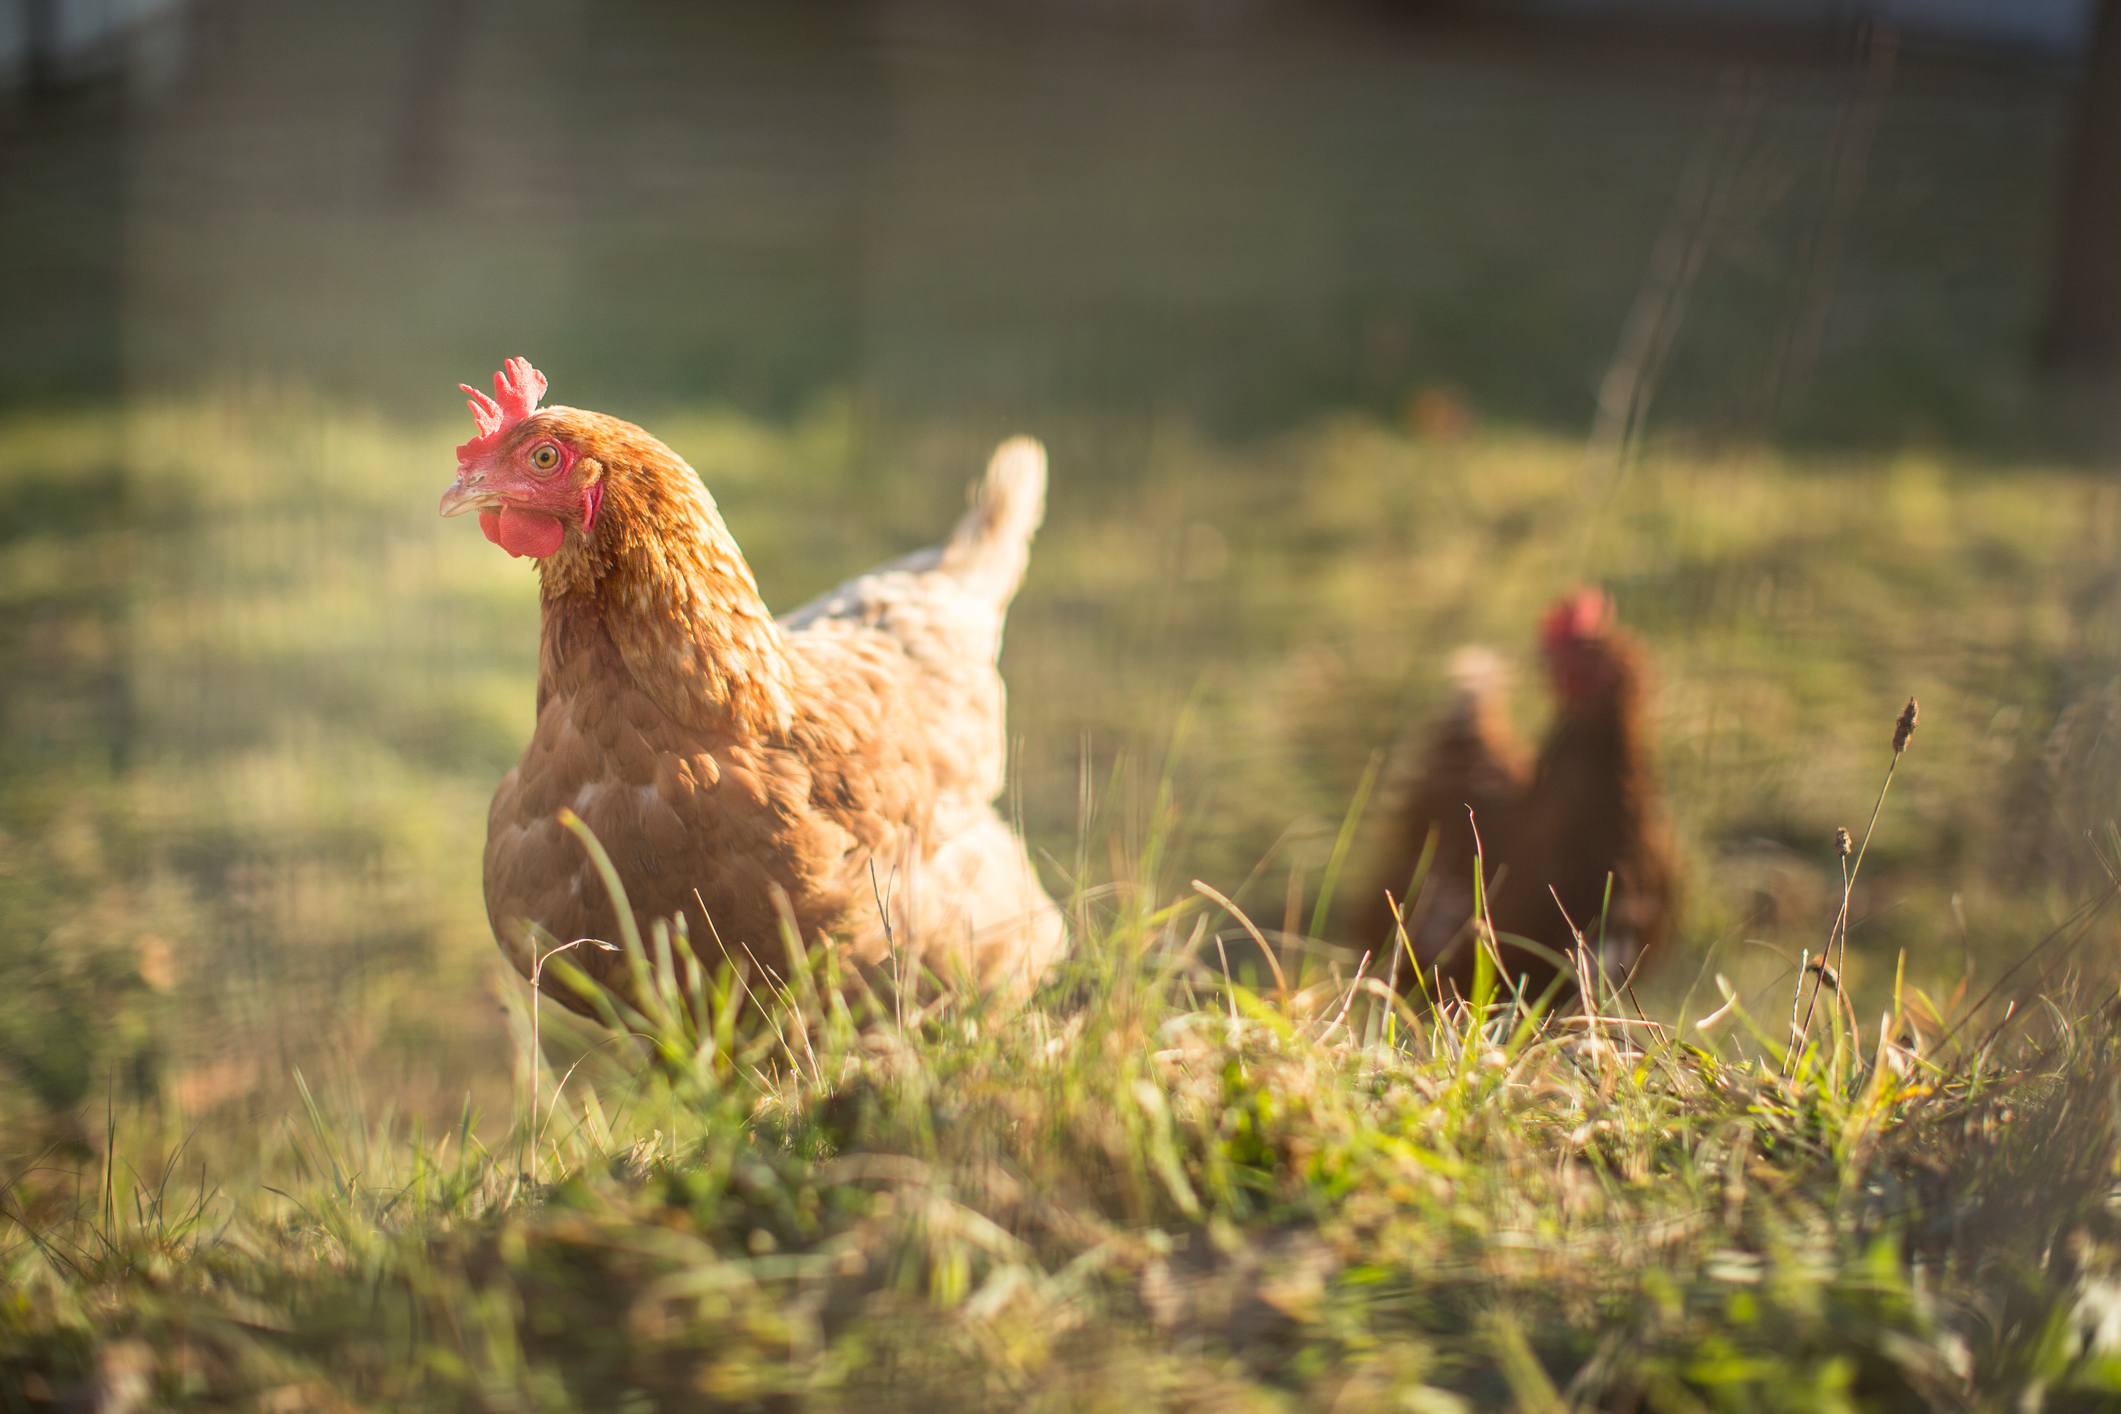 The British Hen Welfare Trust is pushing for free range eggs to be used in processed food